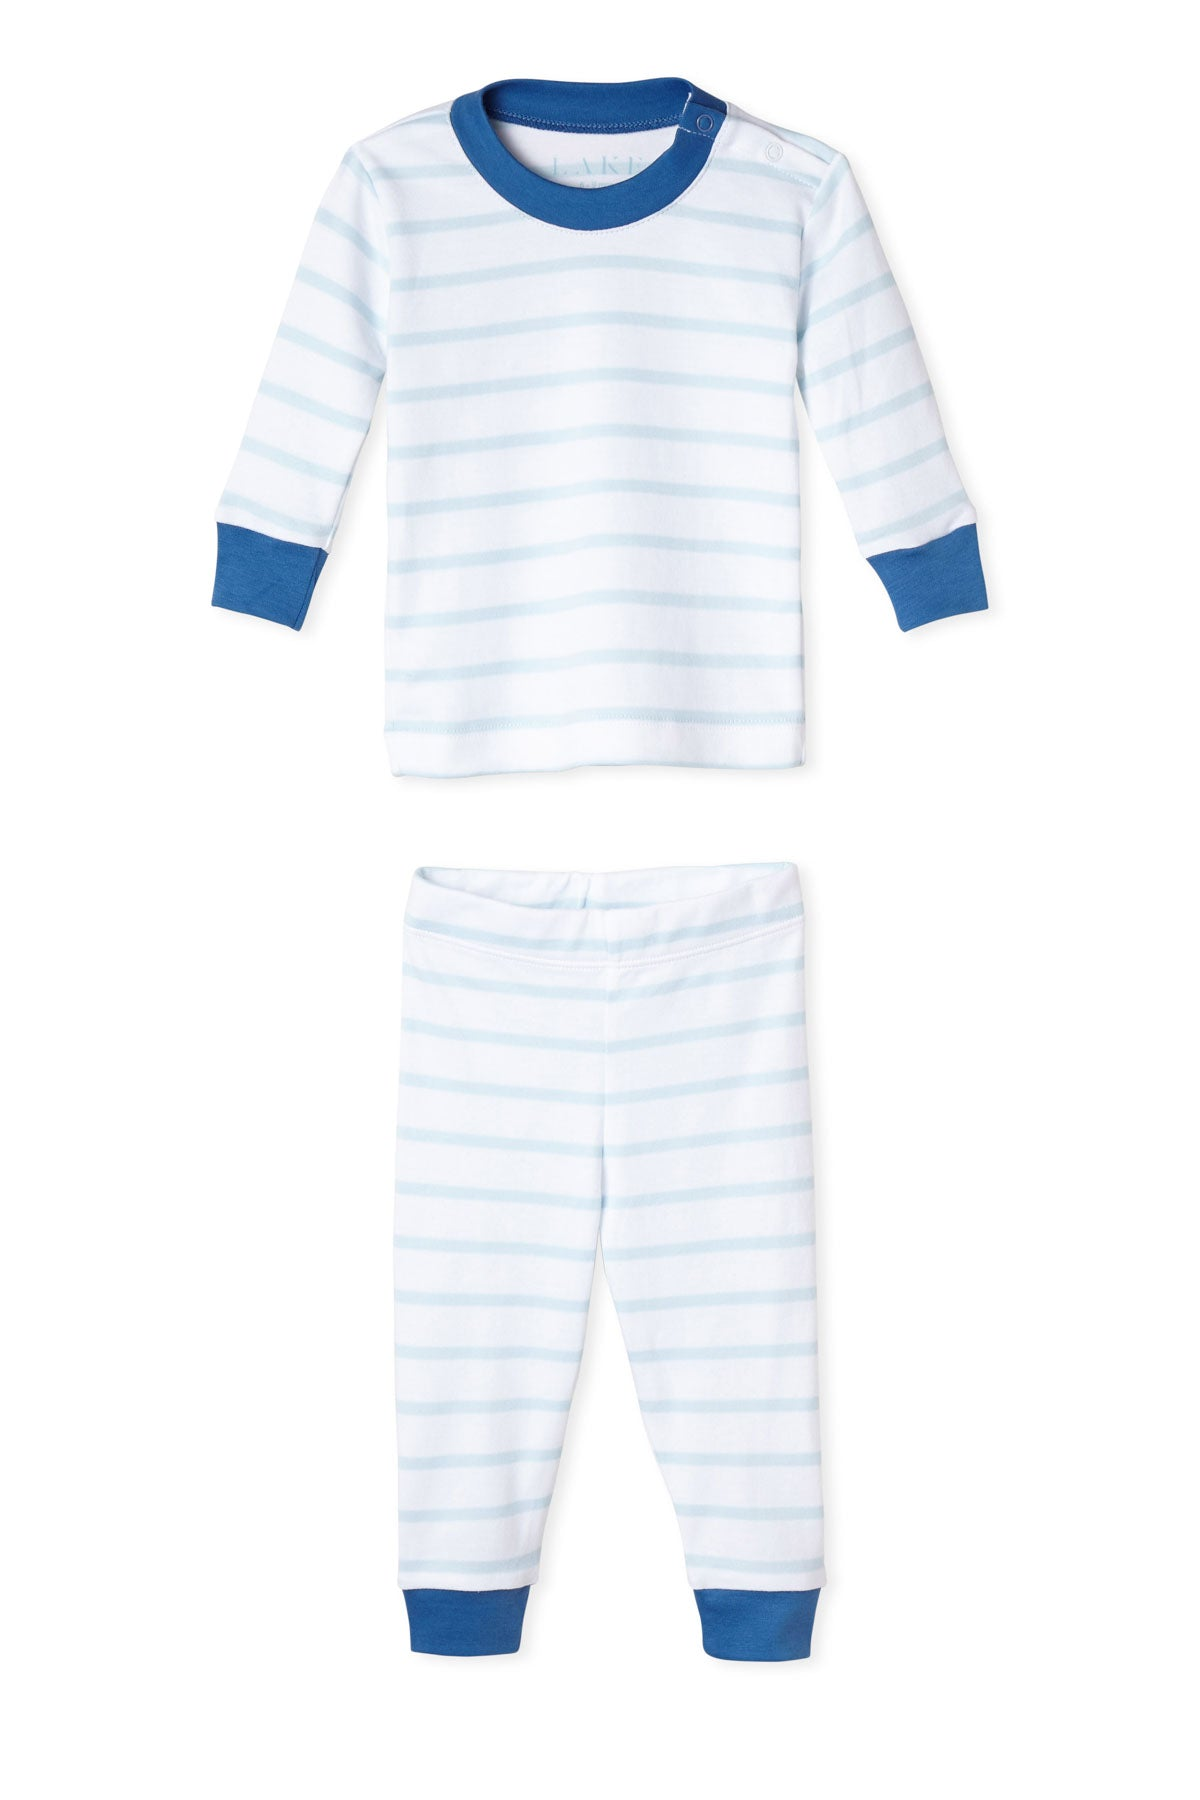 Baby Long-Long Set in Oxford Blue